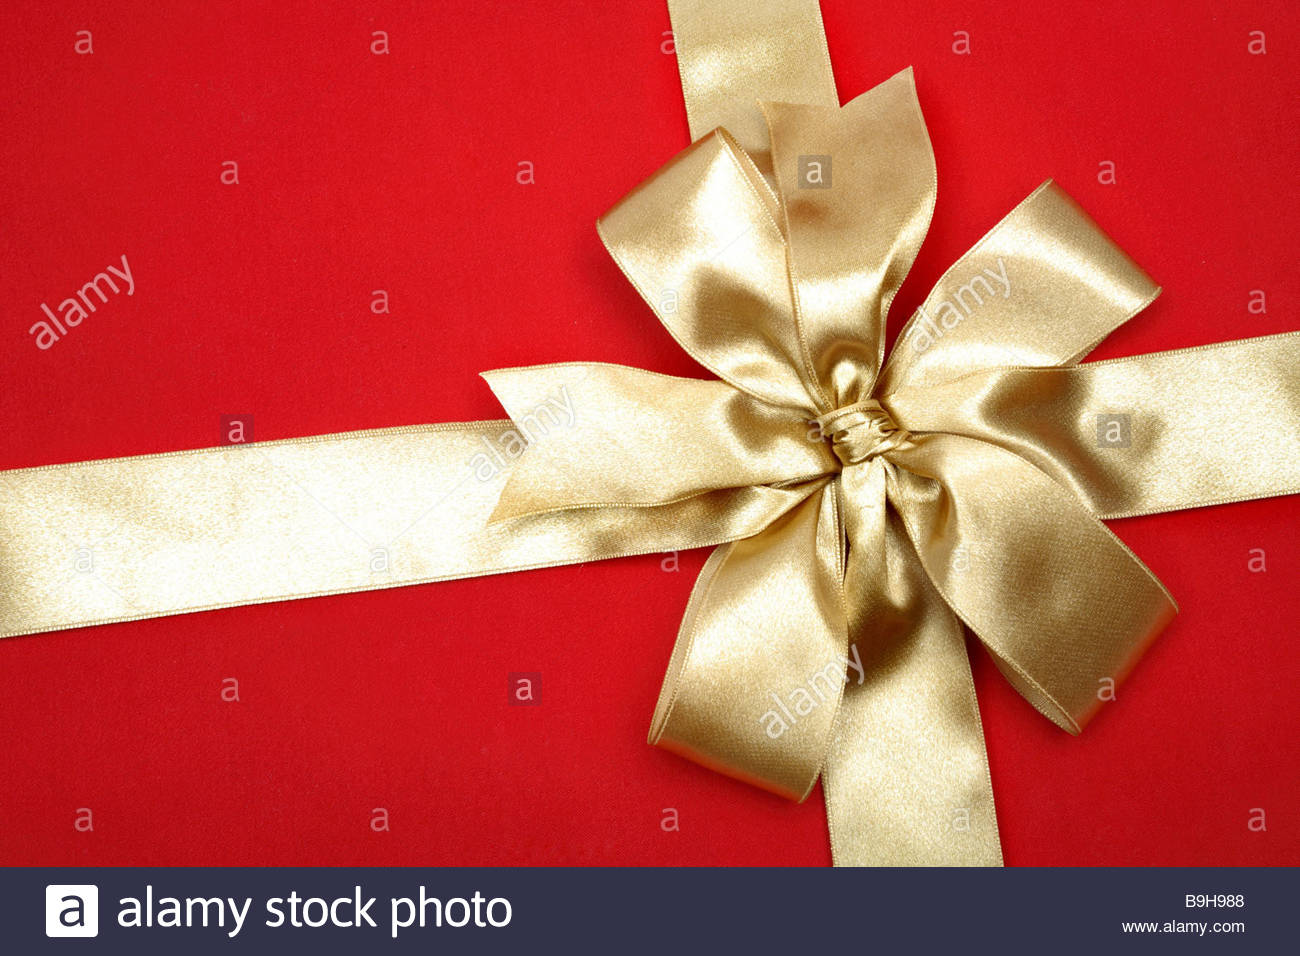 Gift packs red bow golden detail christmas birthday christmas gift gift packs red bow golden detail christmas birthday christmas gift birthday gift present surprise festively packet gift package negle Choice Image